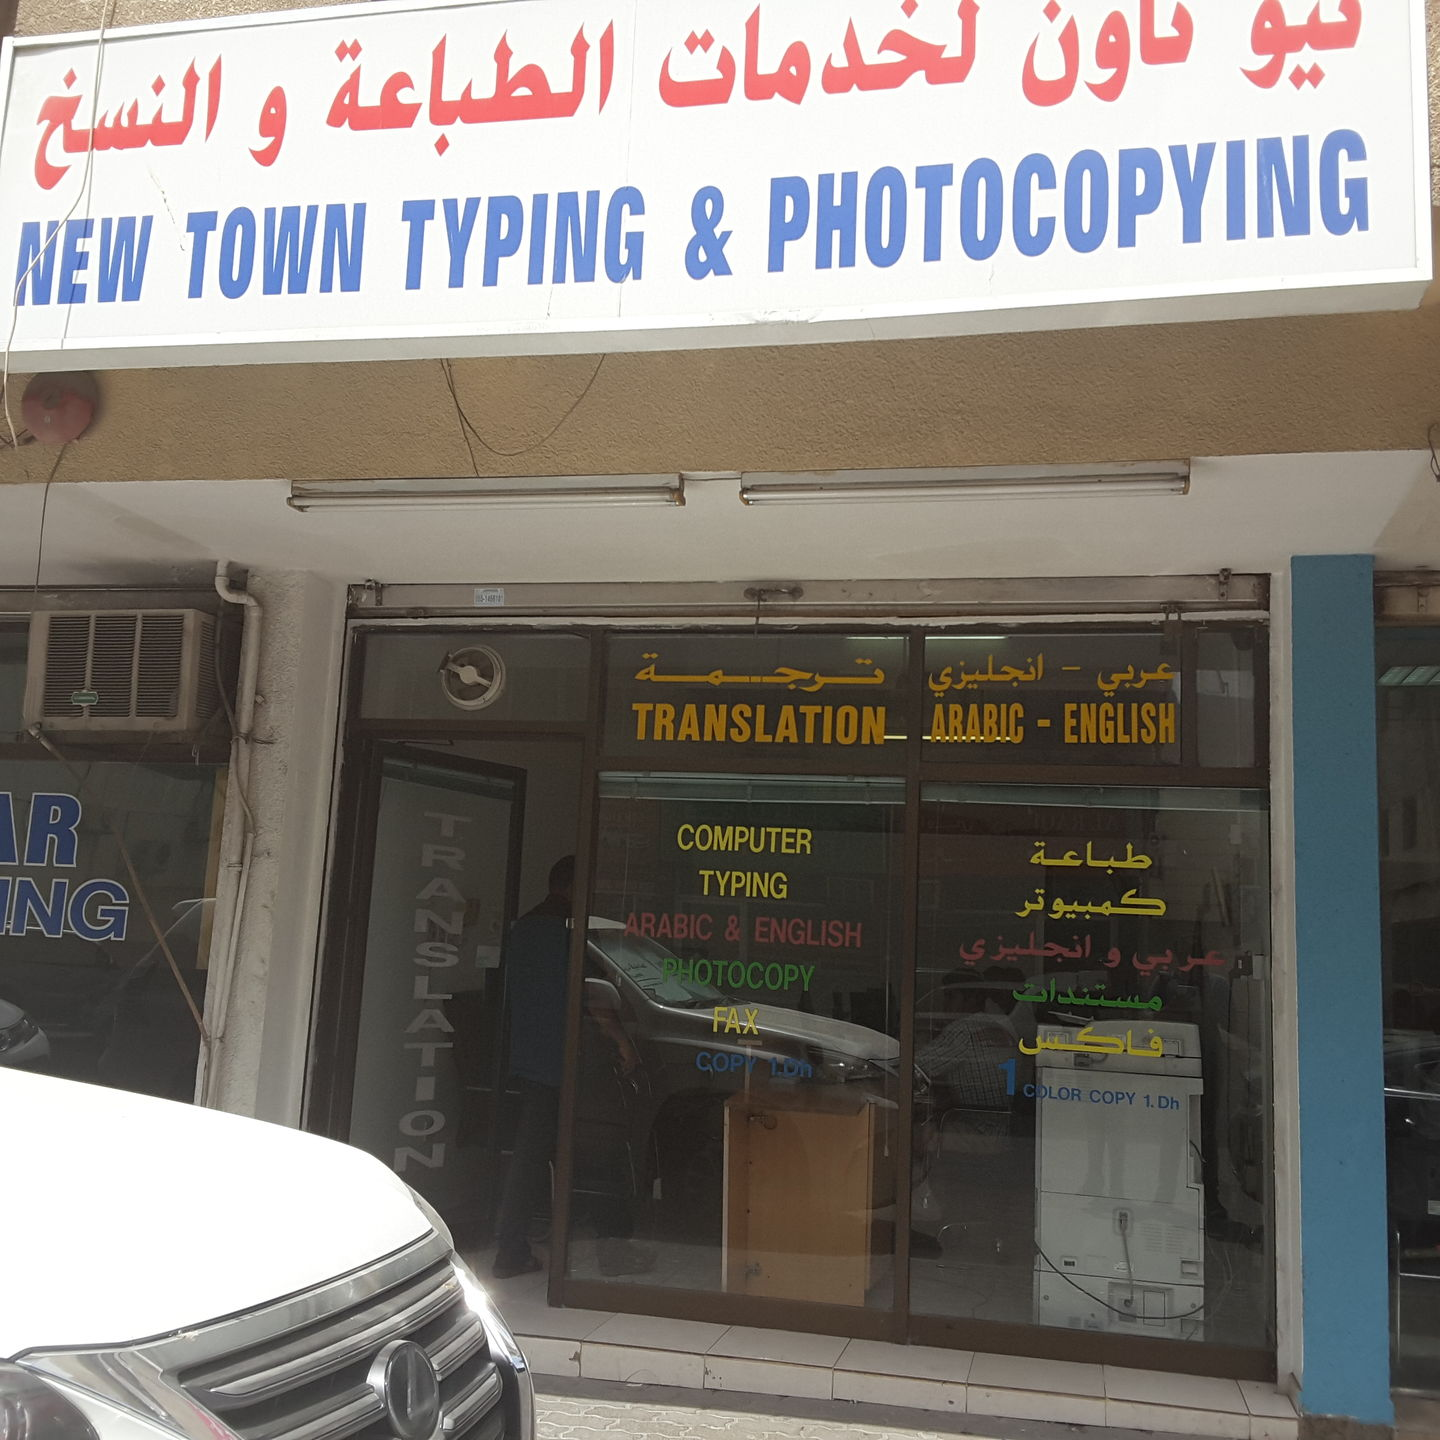 HiDubai-business-new-town-typing-photocopying-government-public-services-printing-typing-services-hor-al-anz-dubai-2